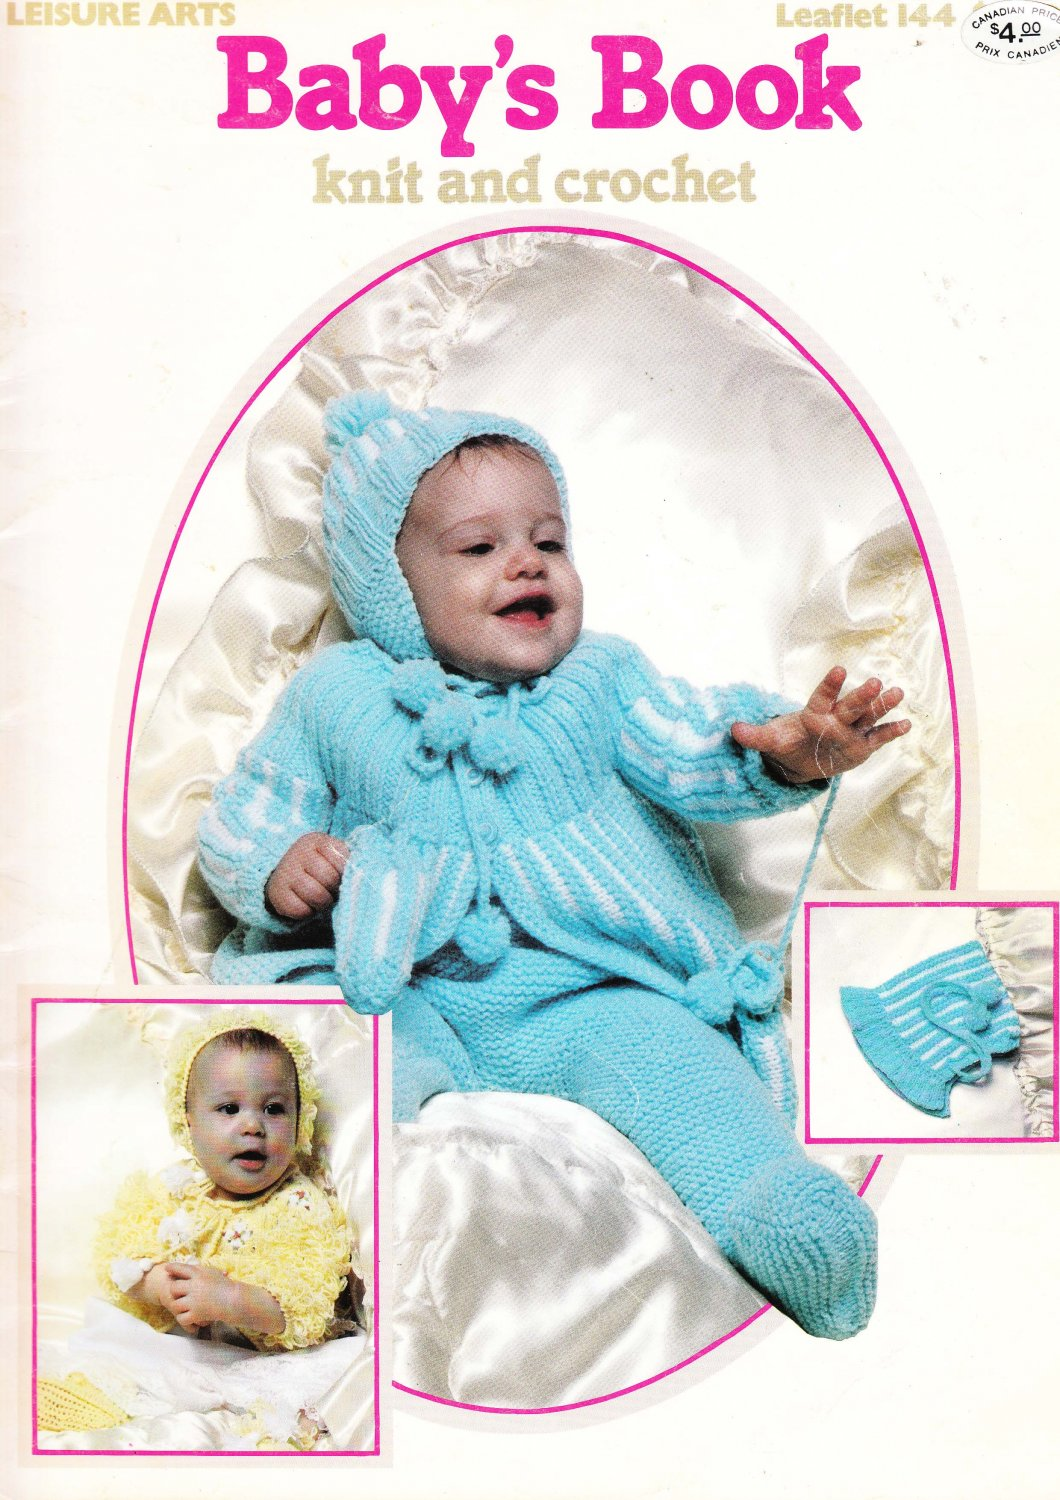 Leisure Arts 1979 Leaflet #144 Baby's Book knit and crochet